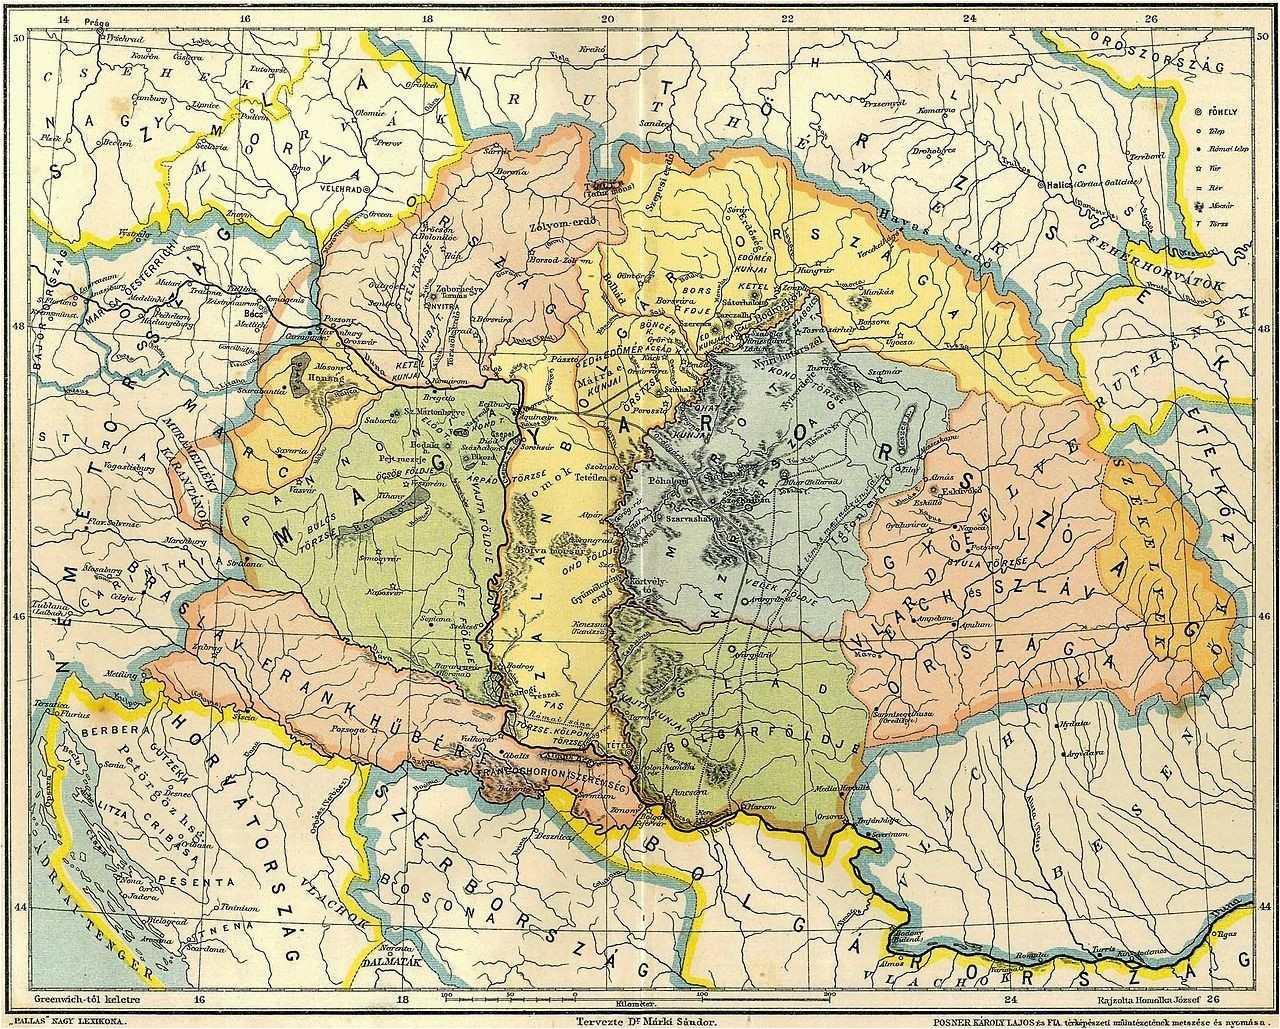 map of central europe in the 9th century before arrival of